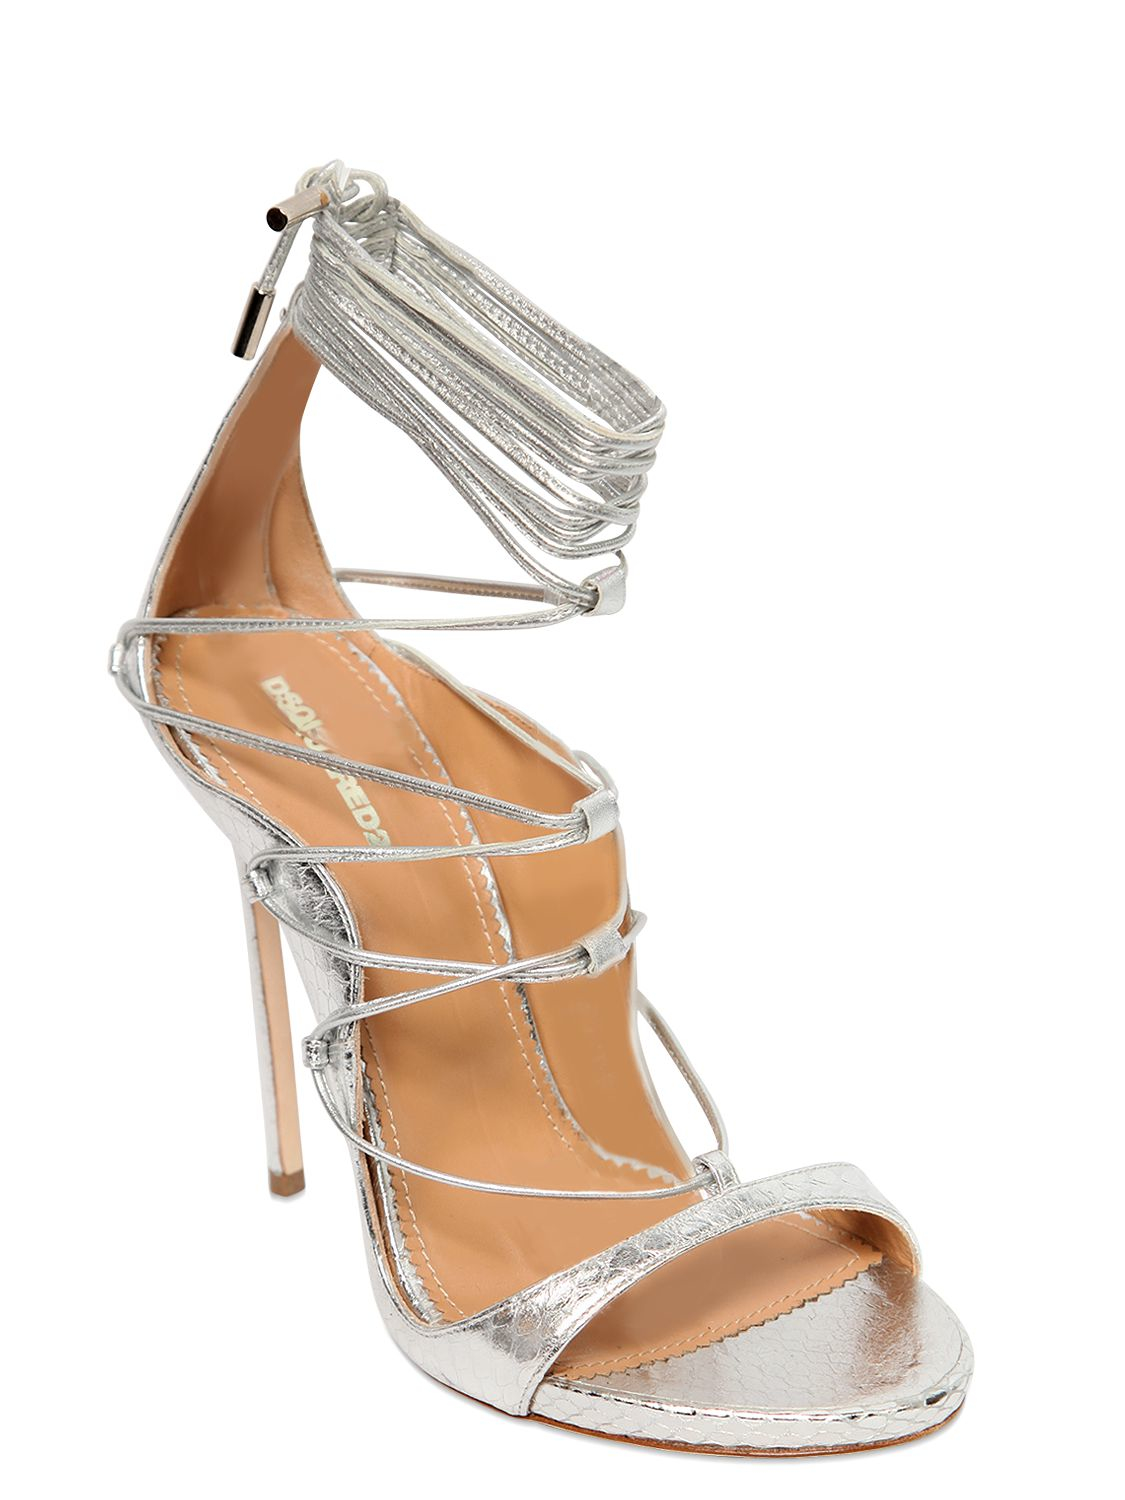 059aa78bb Lyst - DSquared² 120mm Elaphe Snakeskin Lace-up Sandals in Metallic